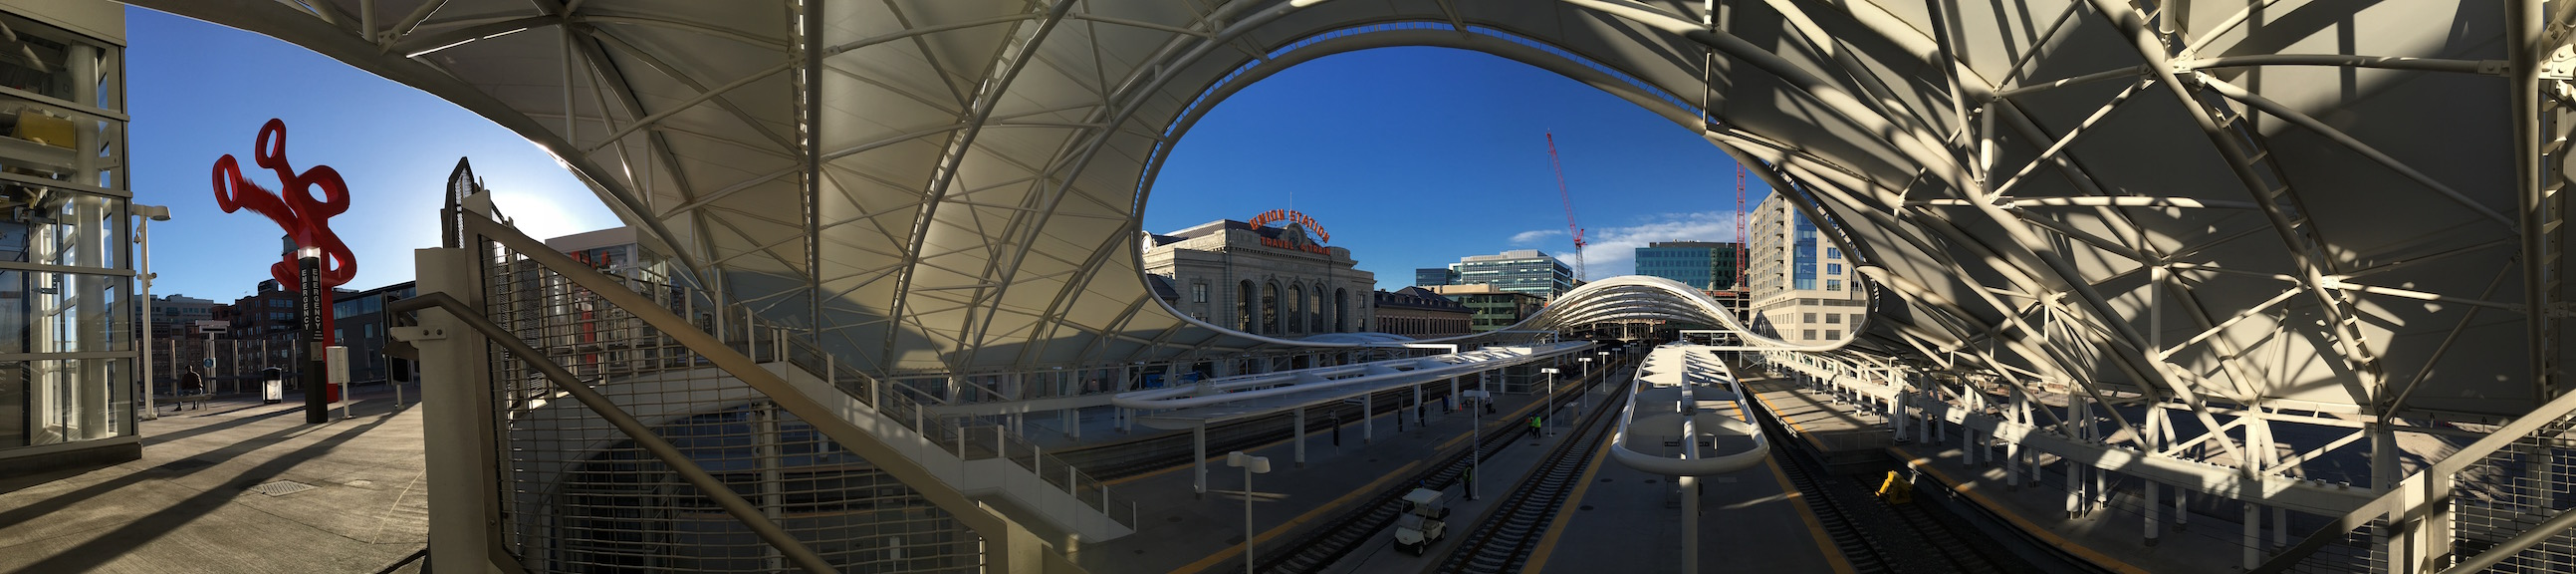 0621_Union_Station_Pano